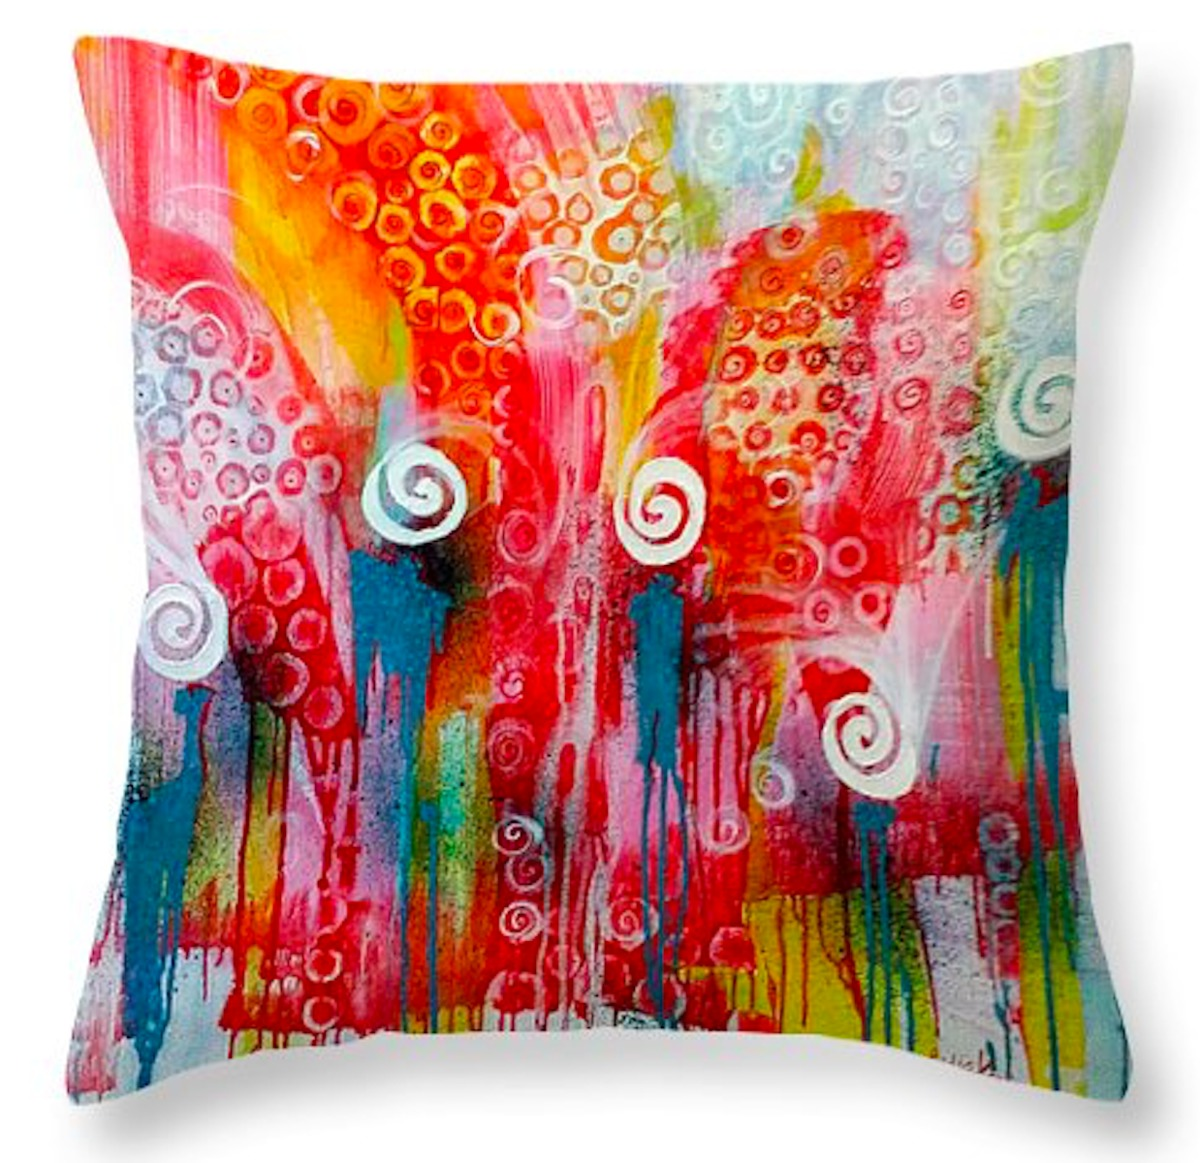 Embracing Grace - Throw Pillow (26x26) (large view)